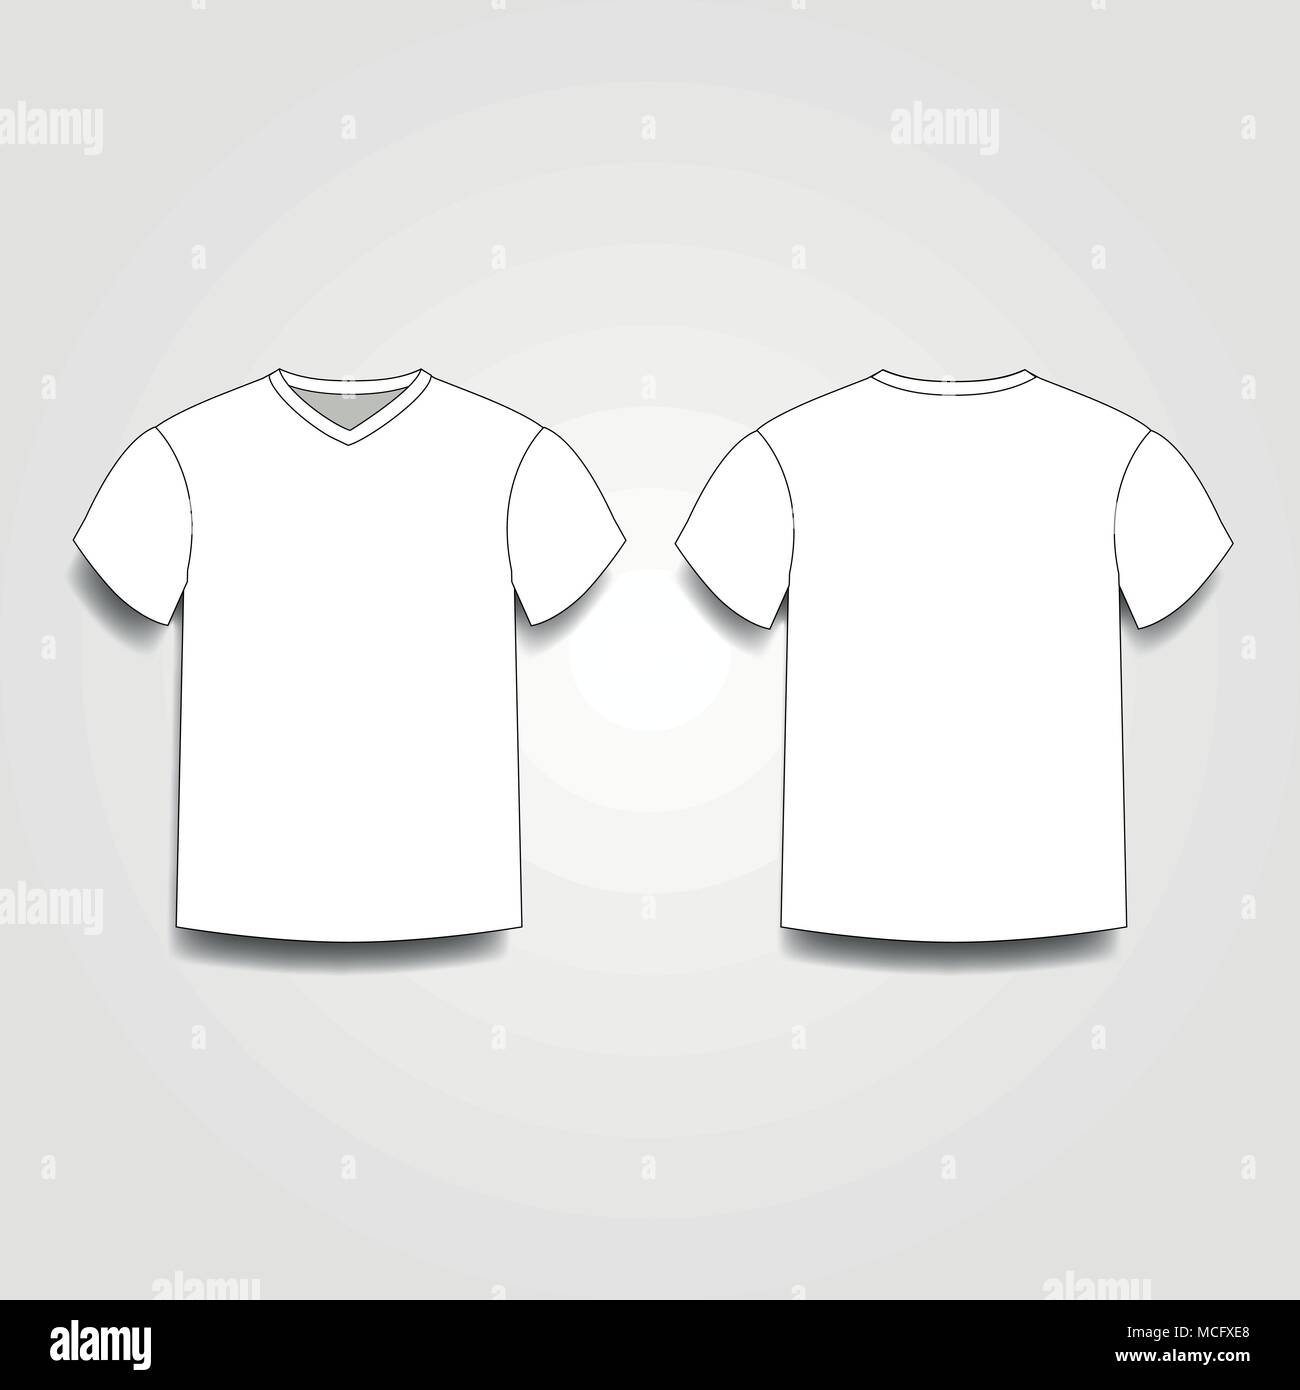 White mens t shirt template v neck front and back side views white mens t shirt template v neck front and back side views vector of male t shirt wearing illustration isolated on white background maxwellsz